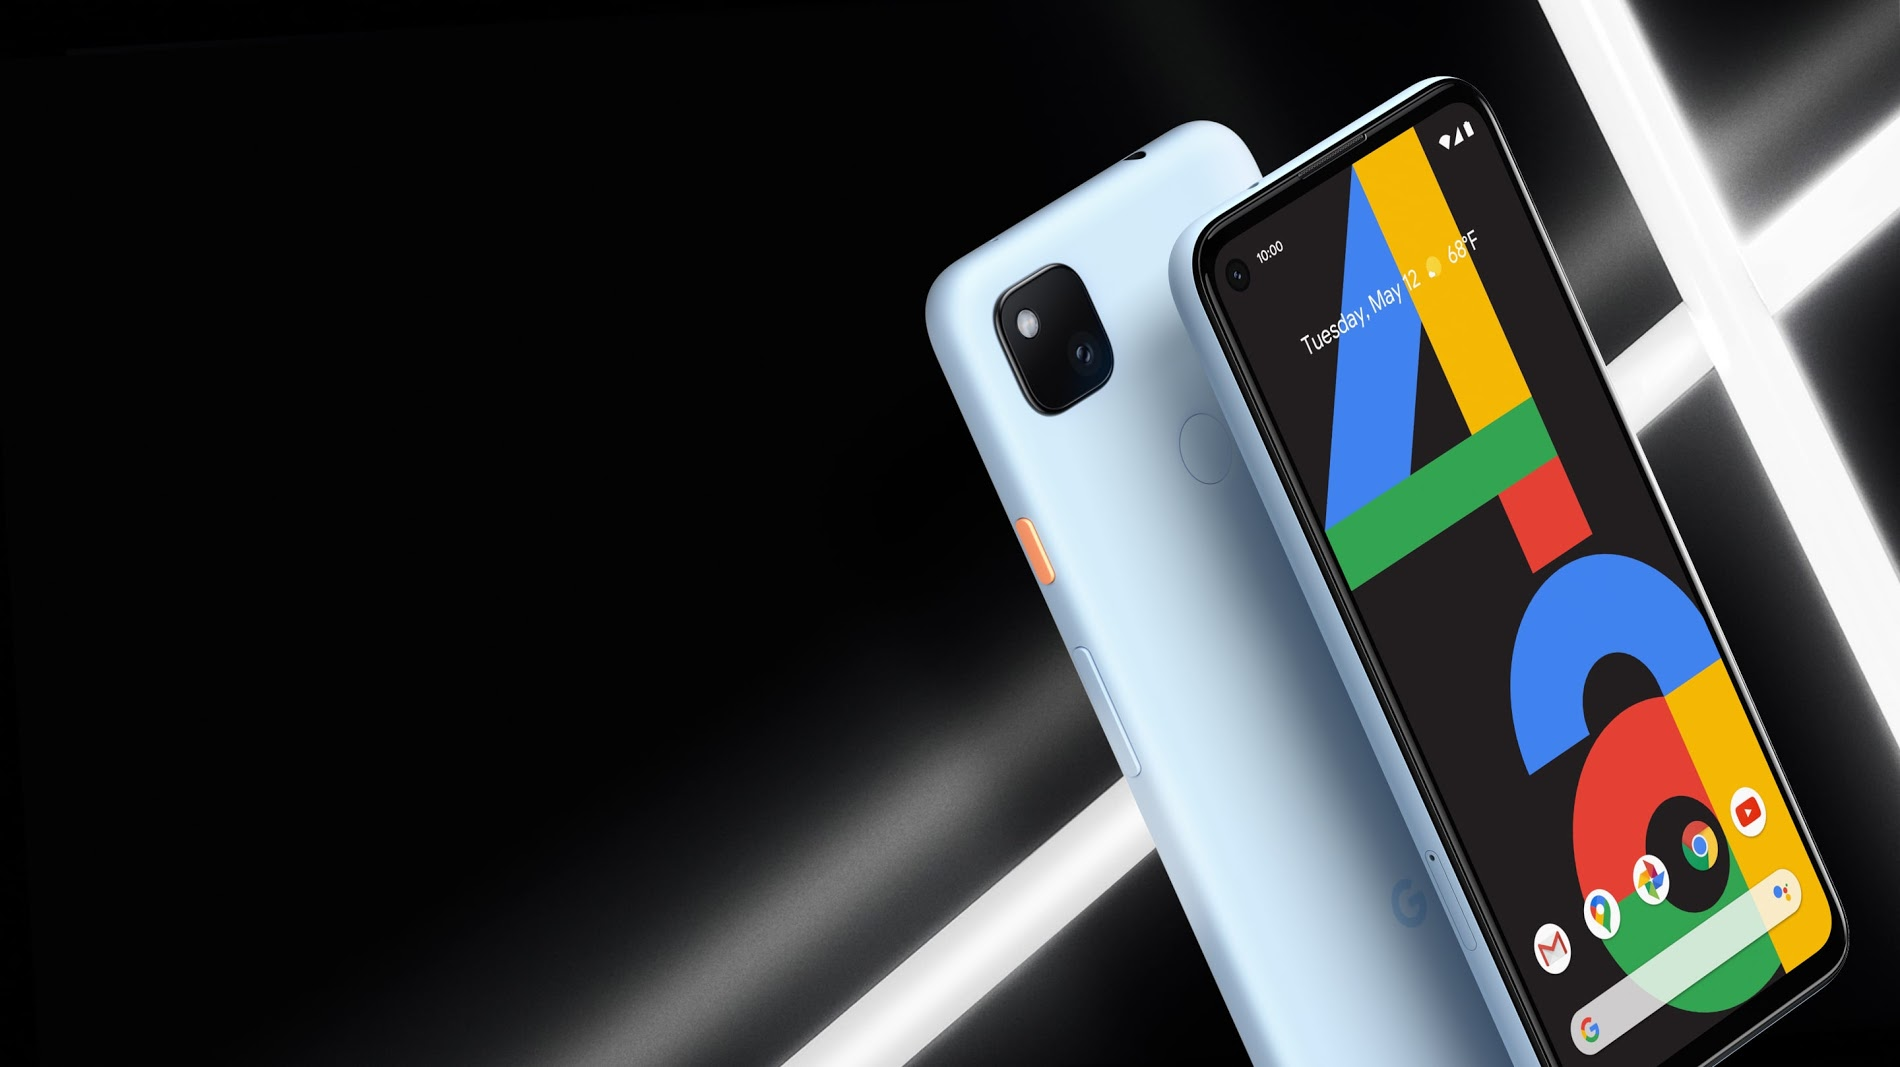 Google gives Pixel 4a new Barely Blue color option